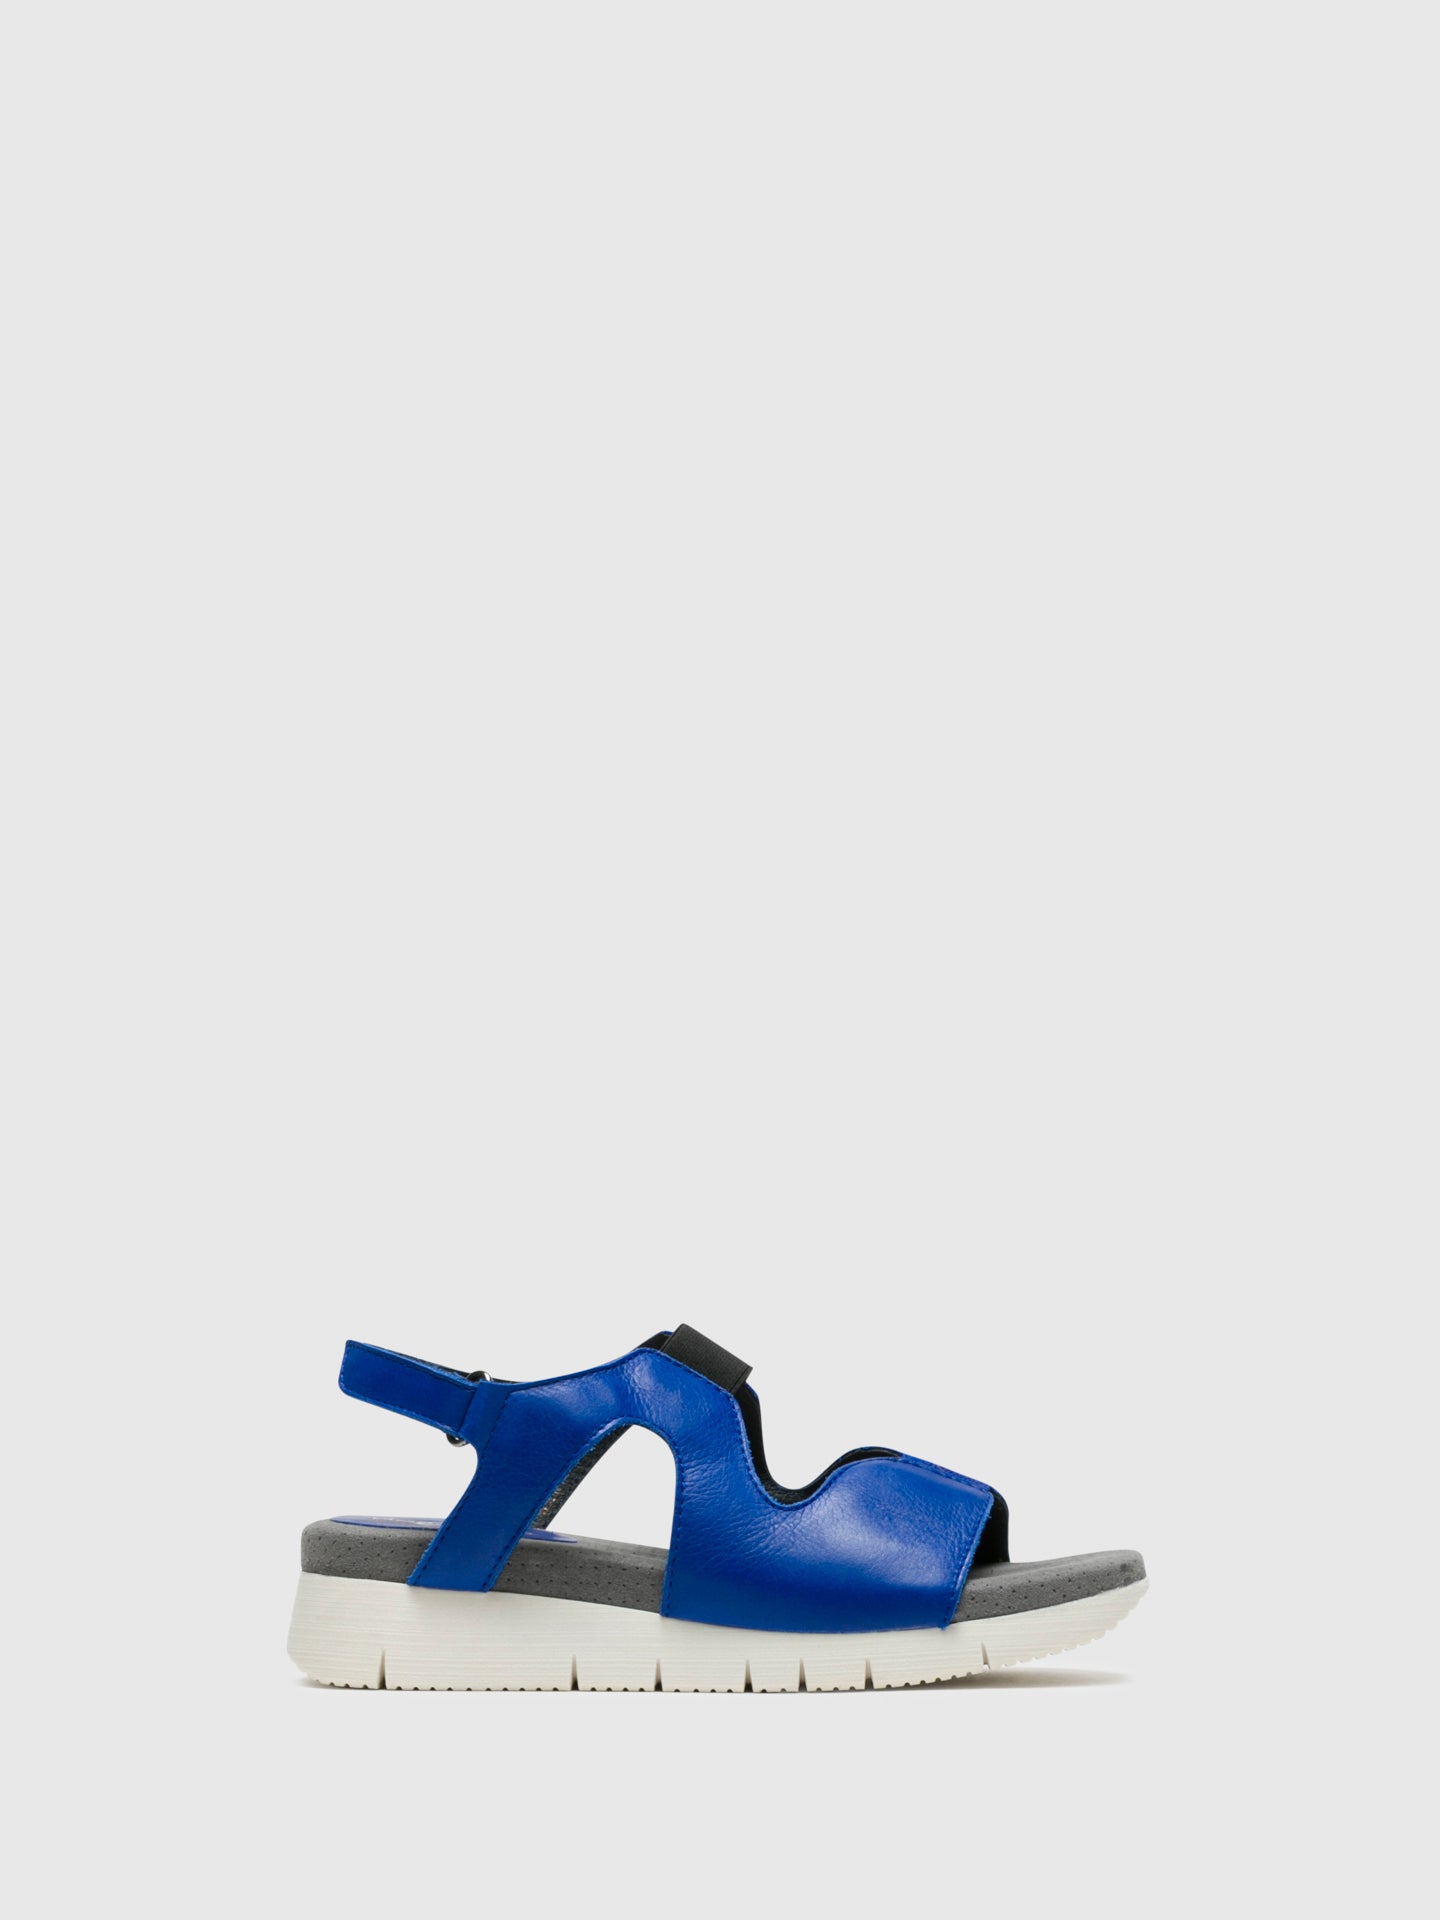 Bos&Co DarkBlue Velcro Sandals